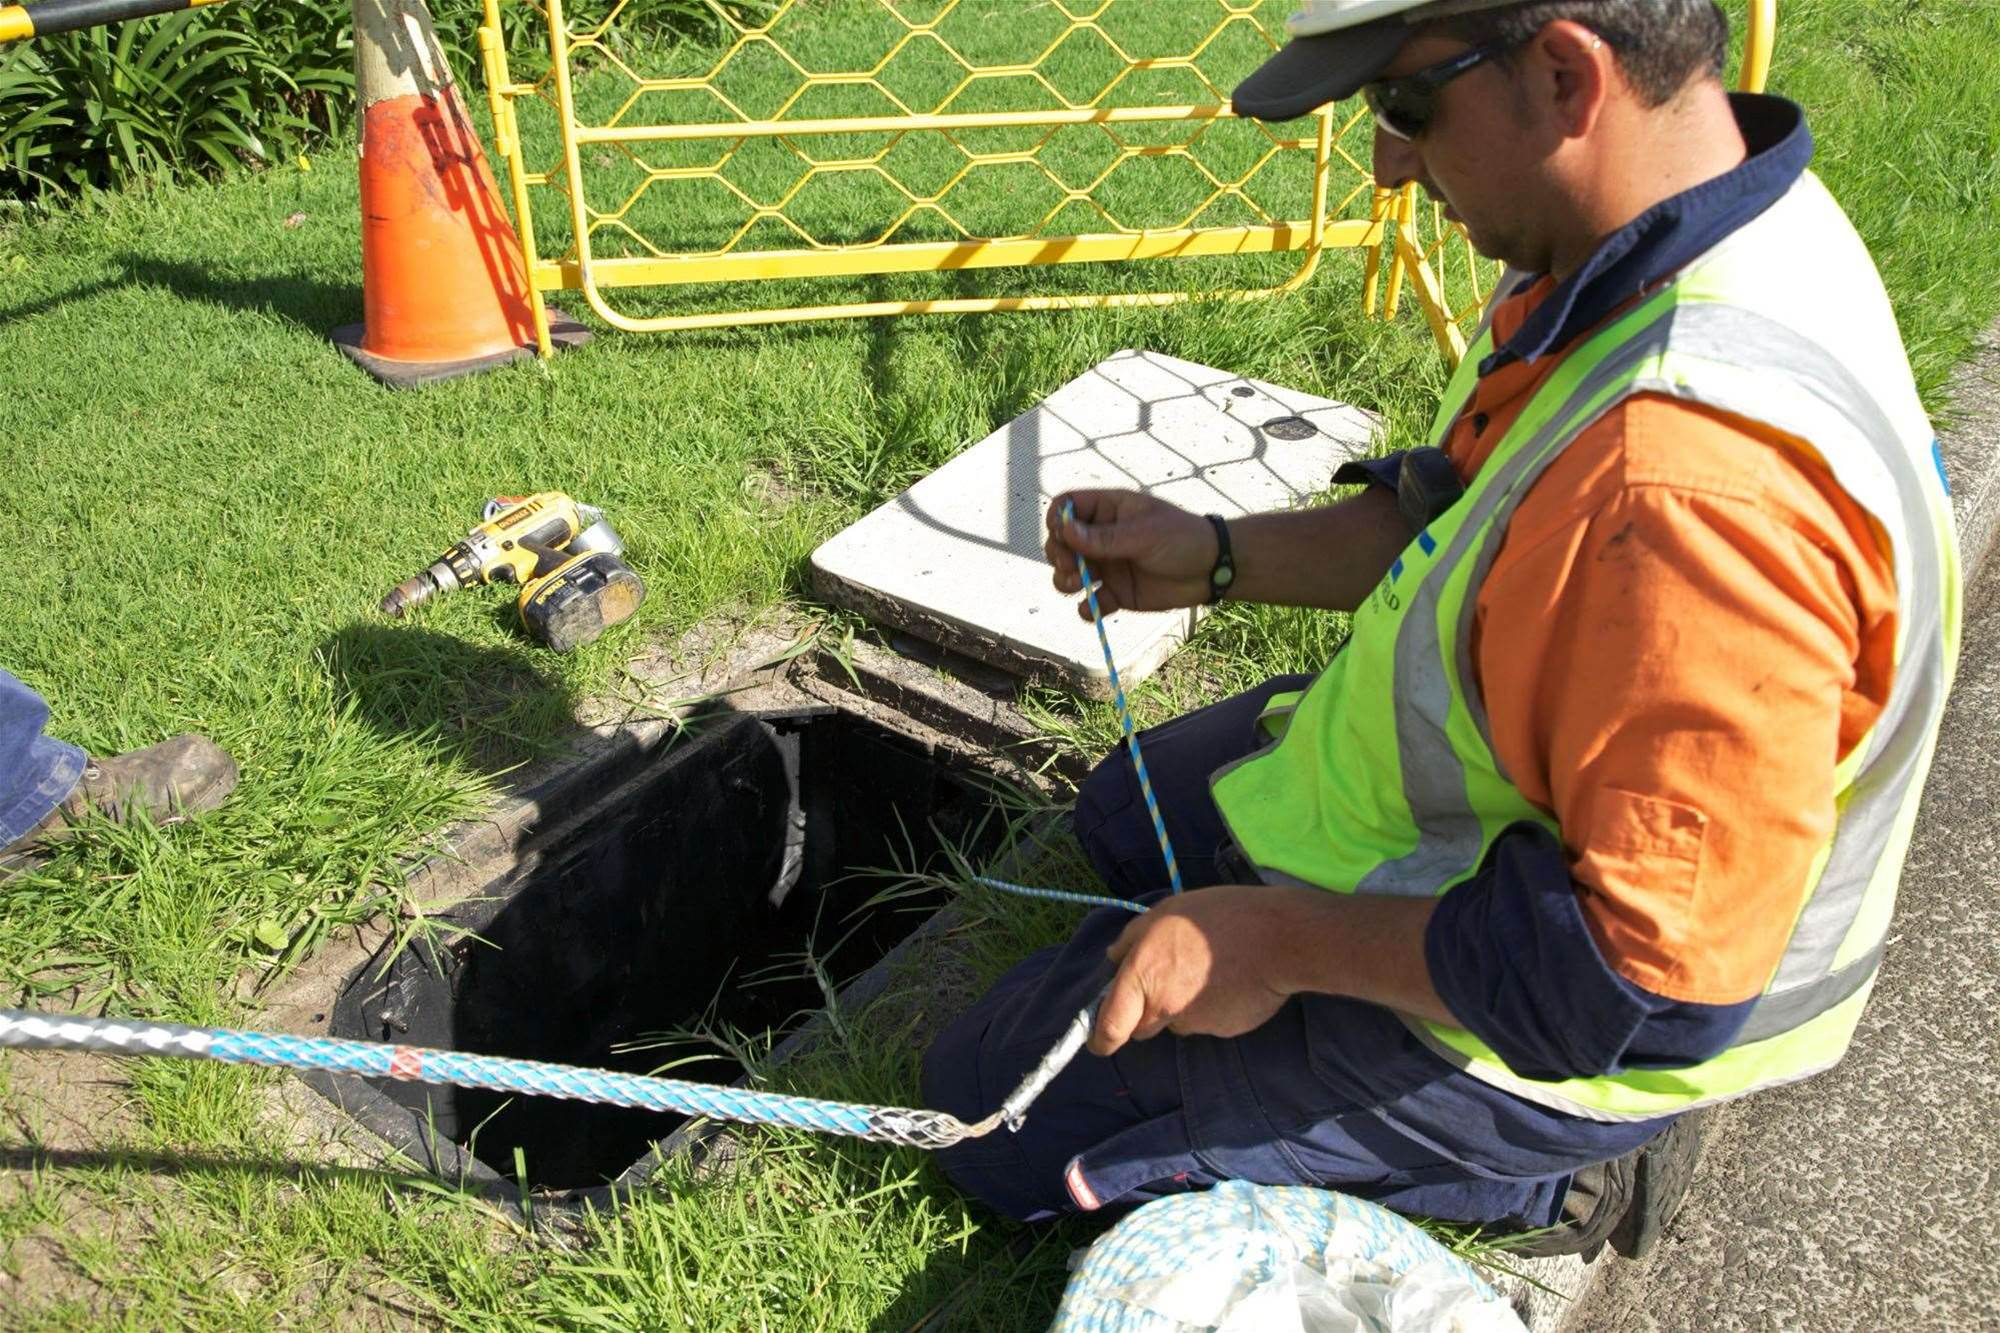 ACCC floats new rules to monitor NBN competition